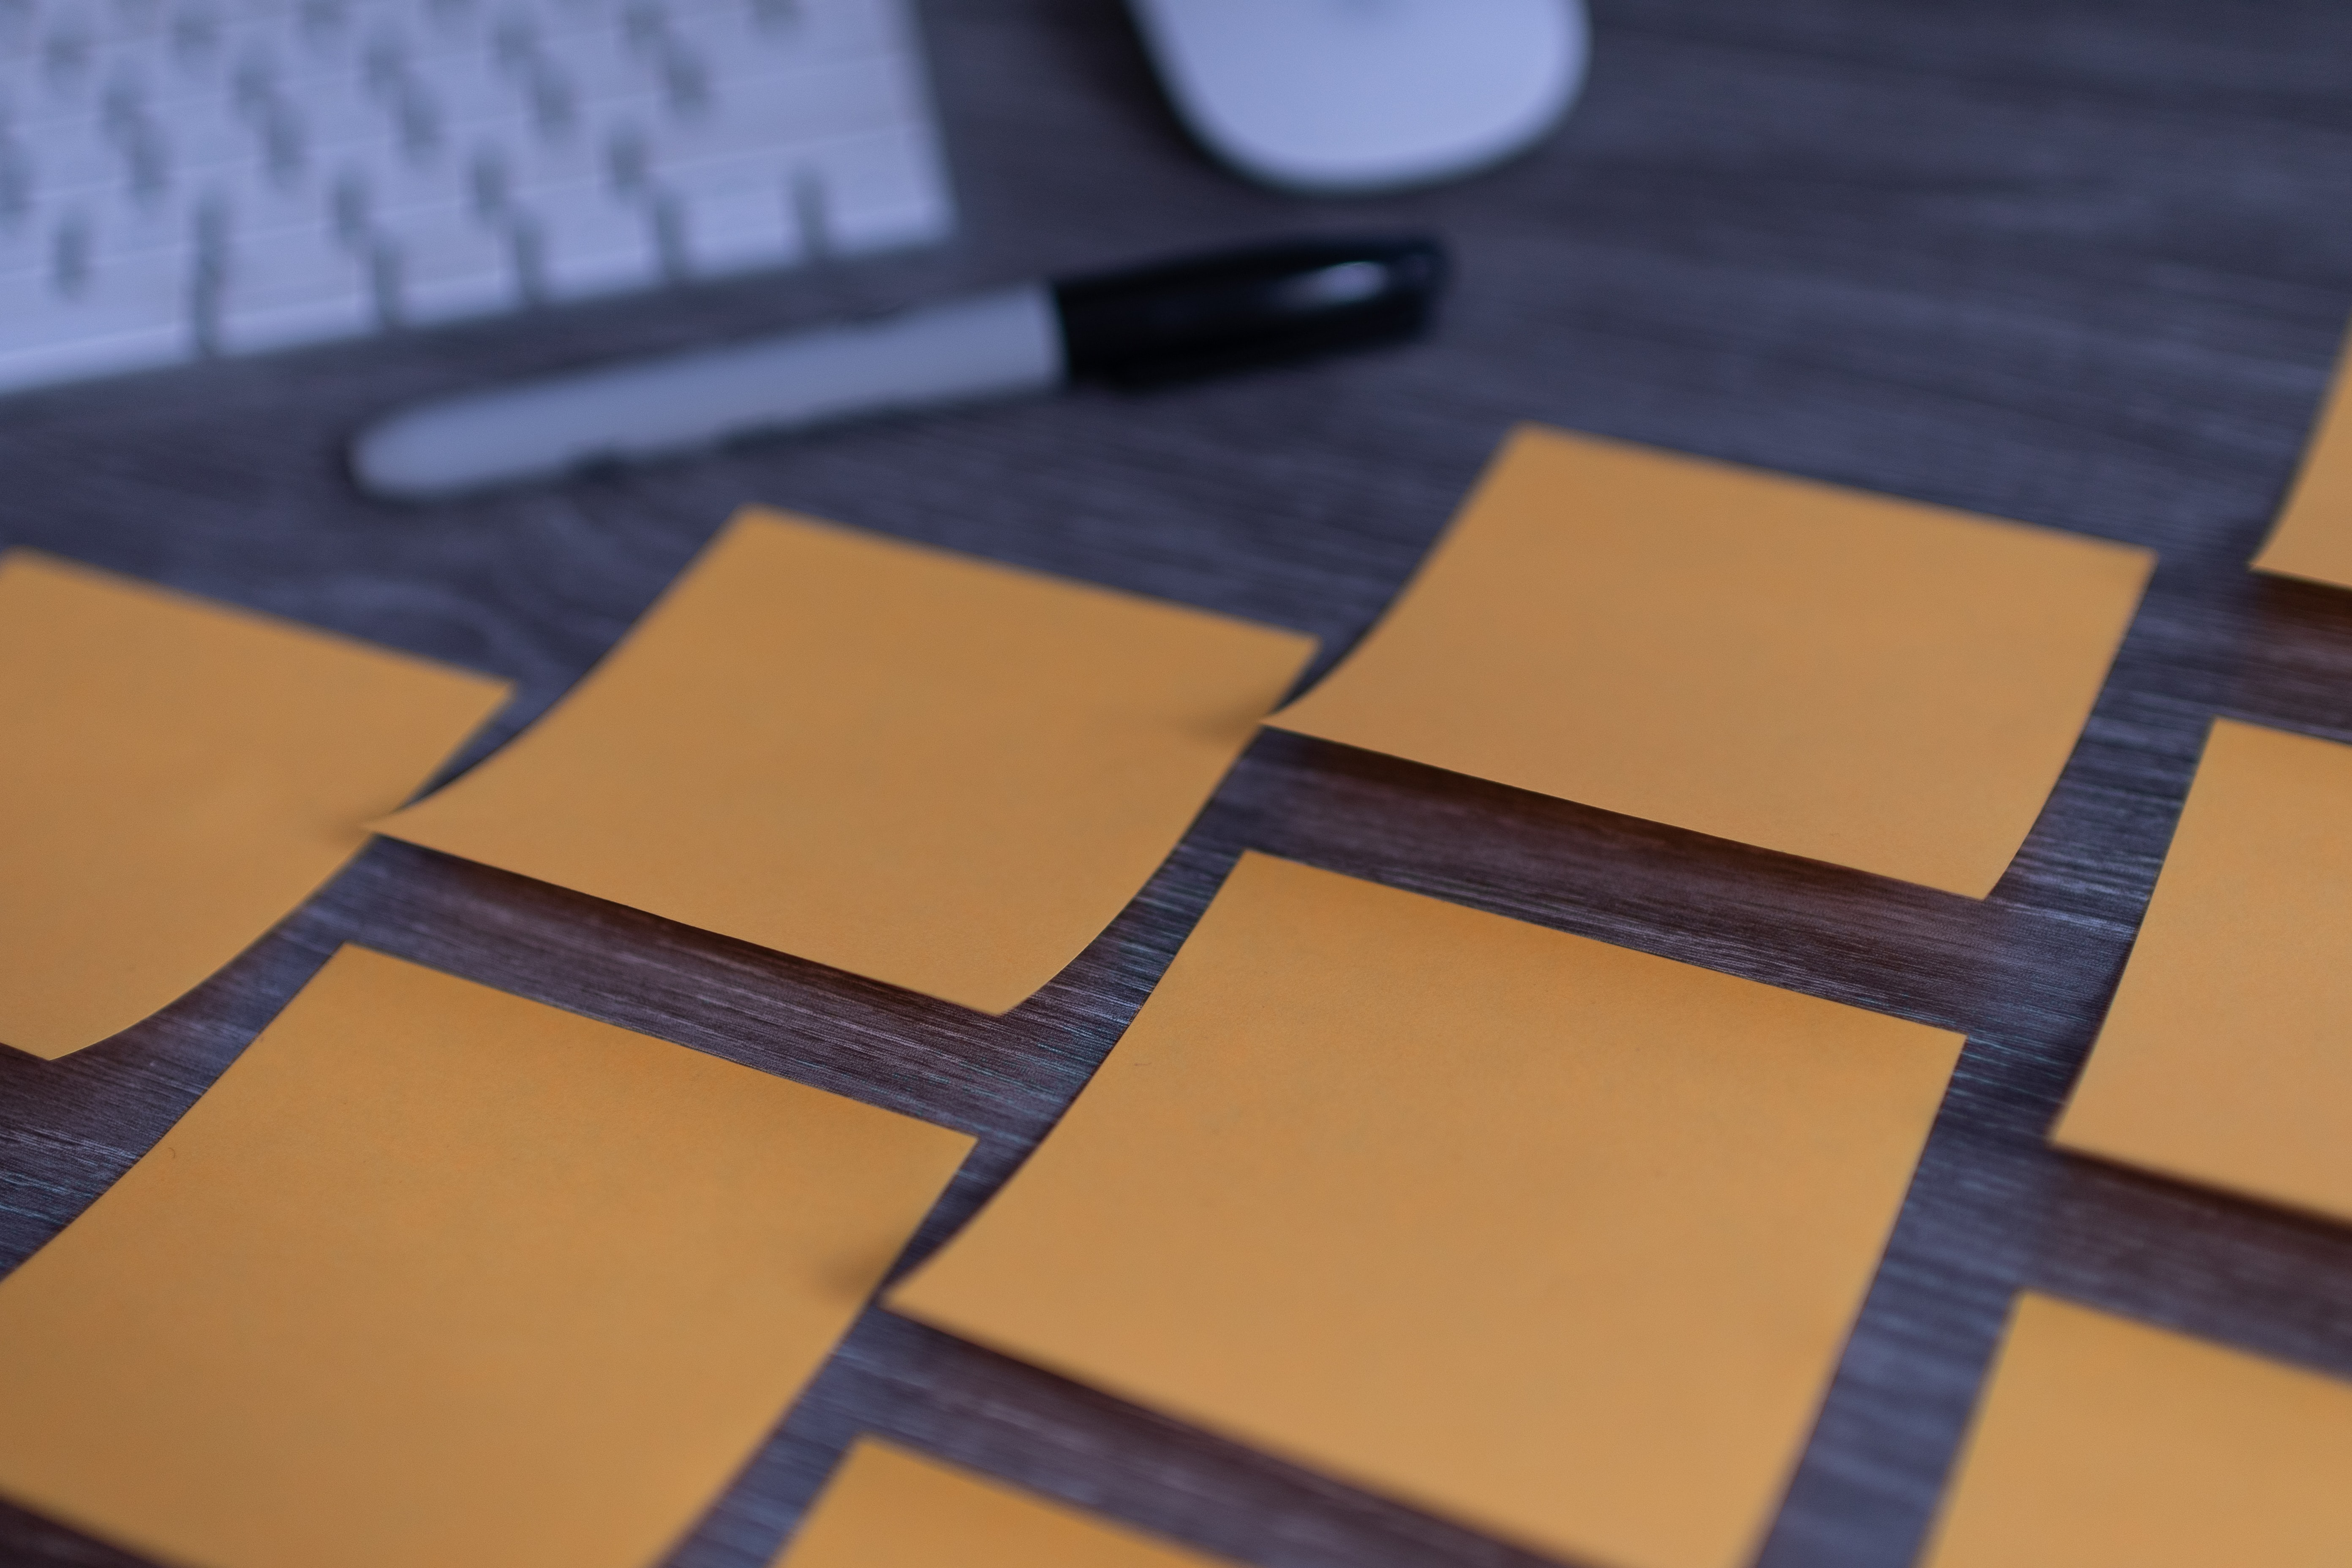 Orange post-it notes laid out next to a keyboard and sharpie